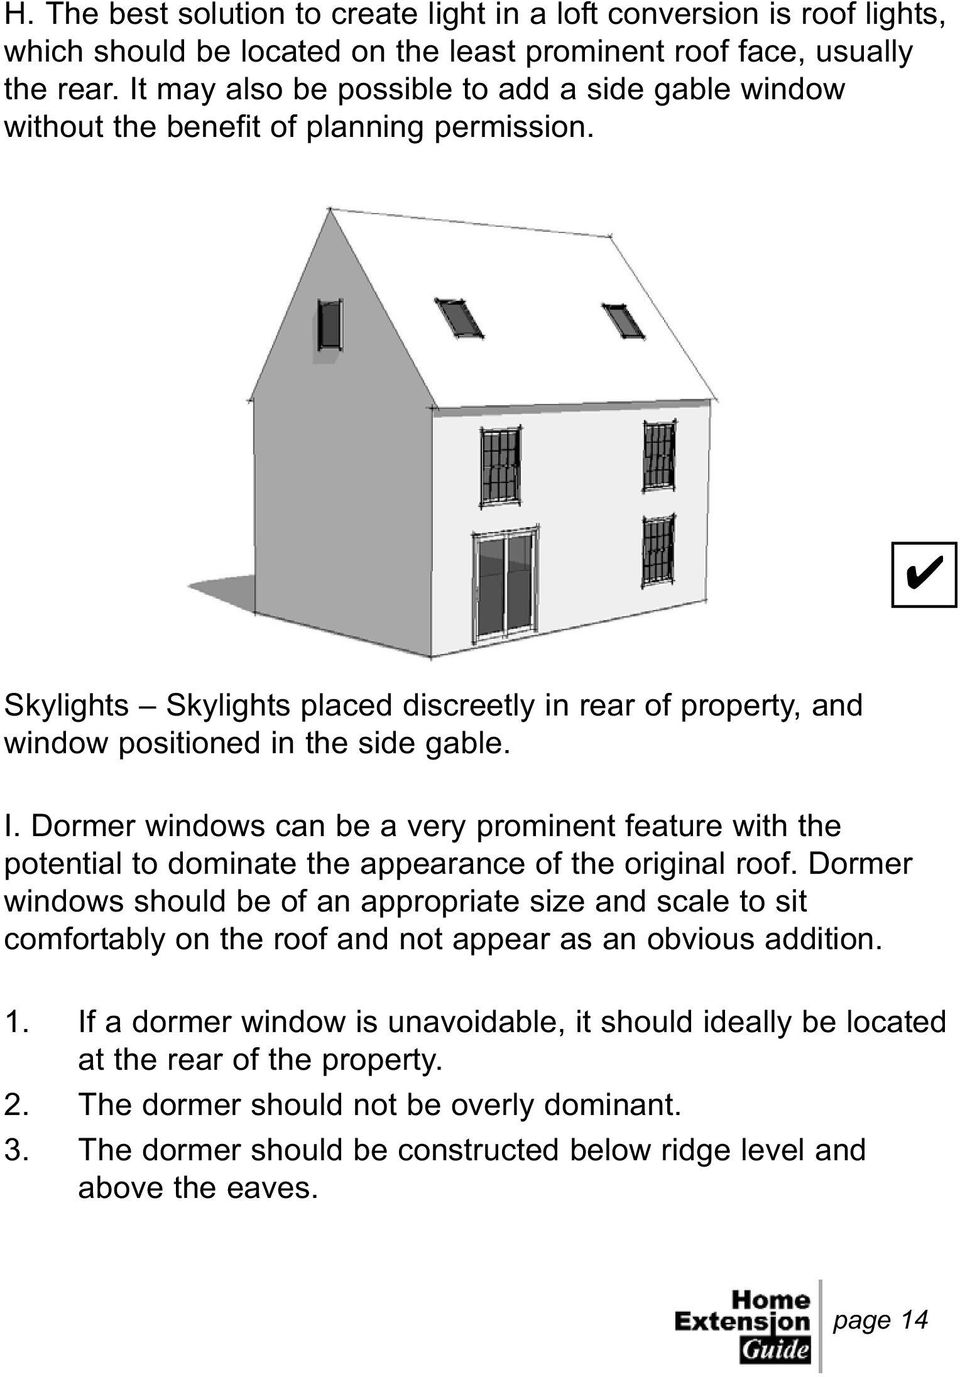 Dormer windows can be a very prominent feature with the potential to dominate the appearance of the original roof.